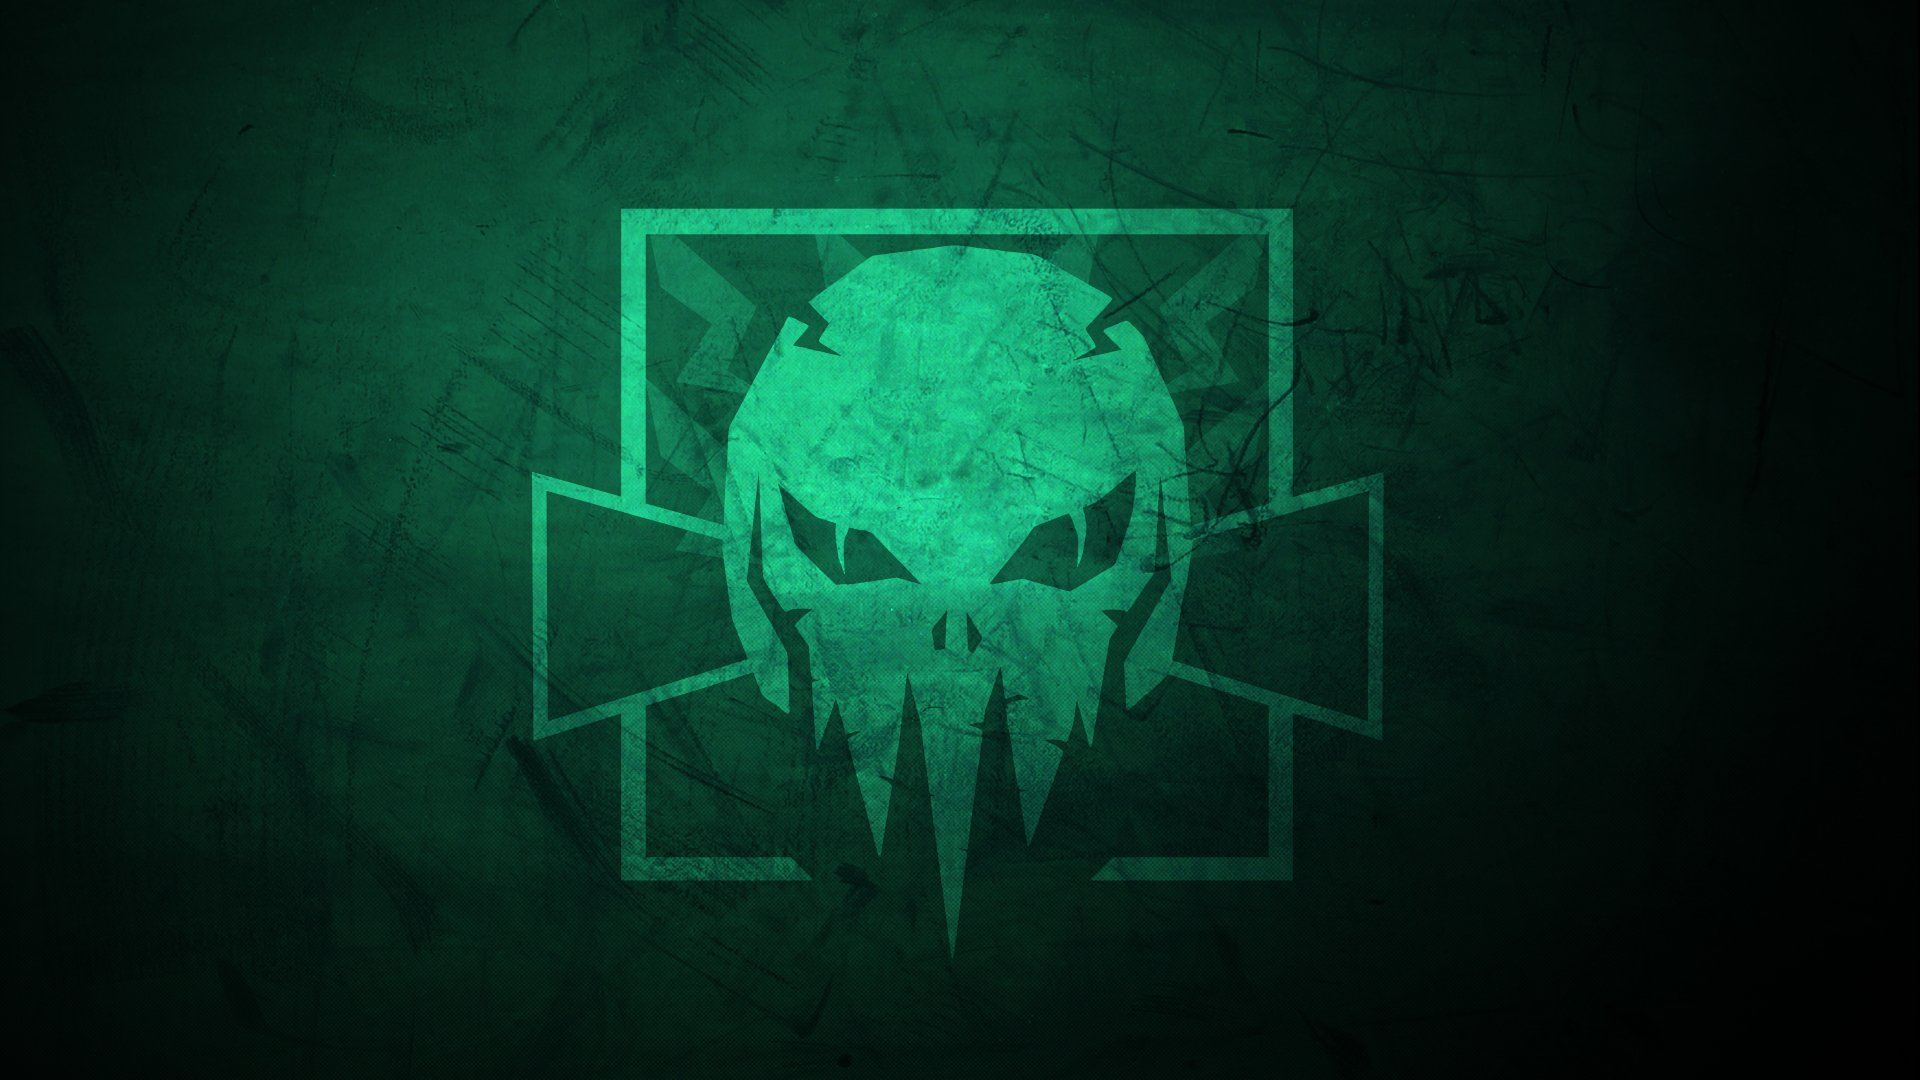 Video Game - Tom Clancy's Rainbow Six: Siege  Fan Art Minimalist Skull Green Operation High Death Wallpaper